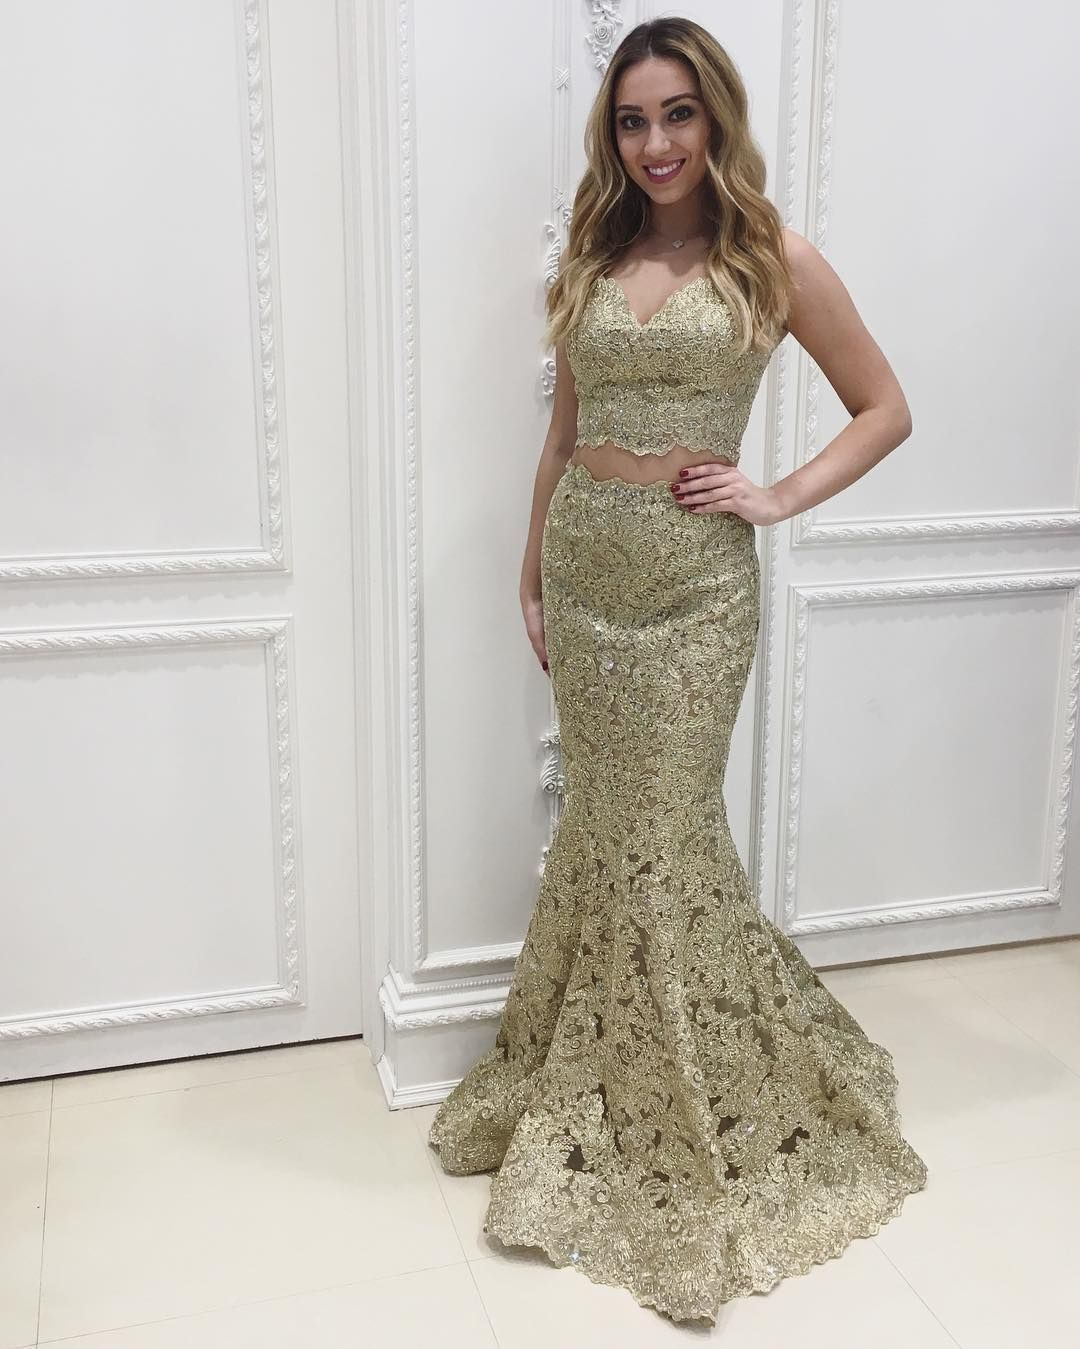 Elegant 2 Pieces Prom Dresses 2018 Gold Lace Mermaid Formal Gowns V neck  Sleeveless Floor Length Evening Party Dresses Long d4908afeb343